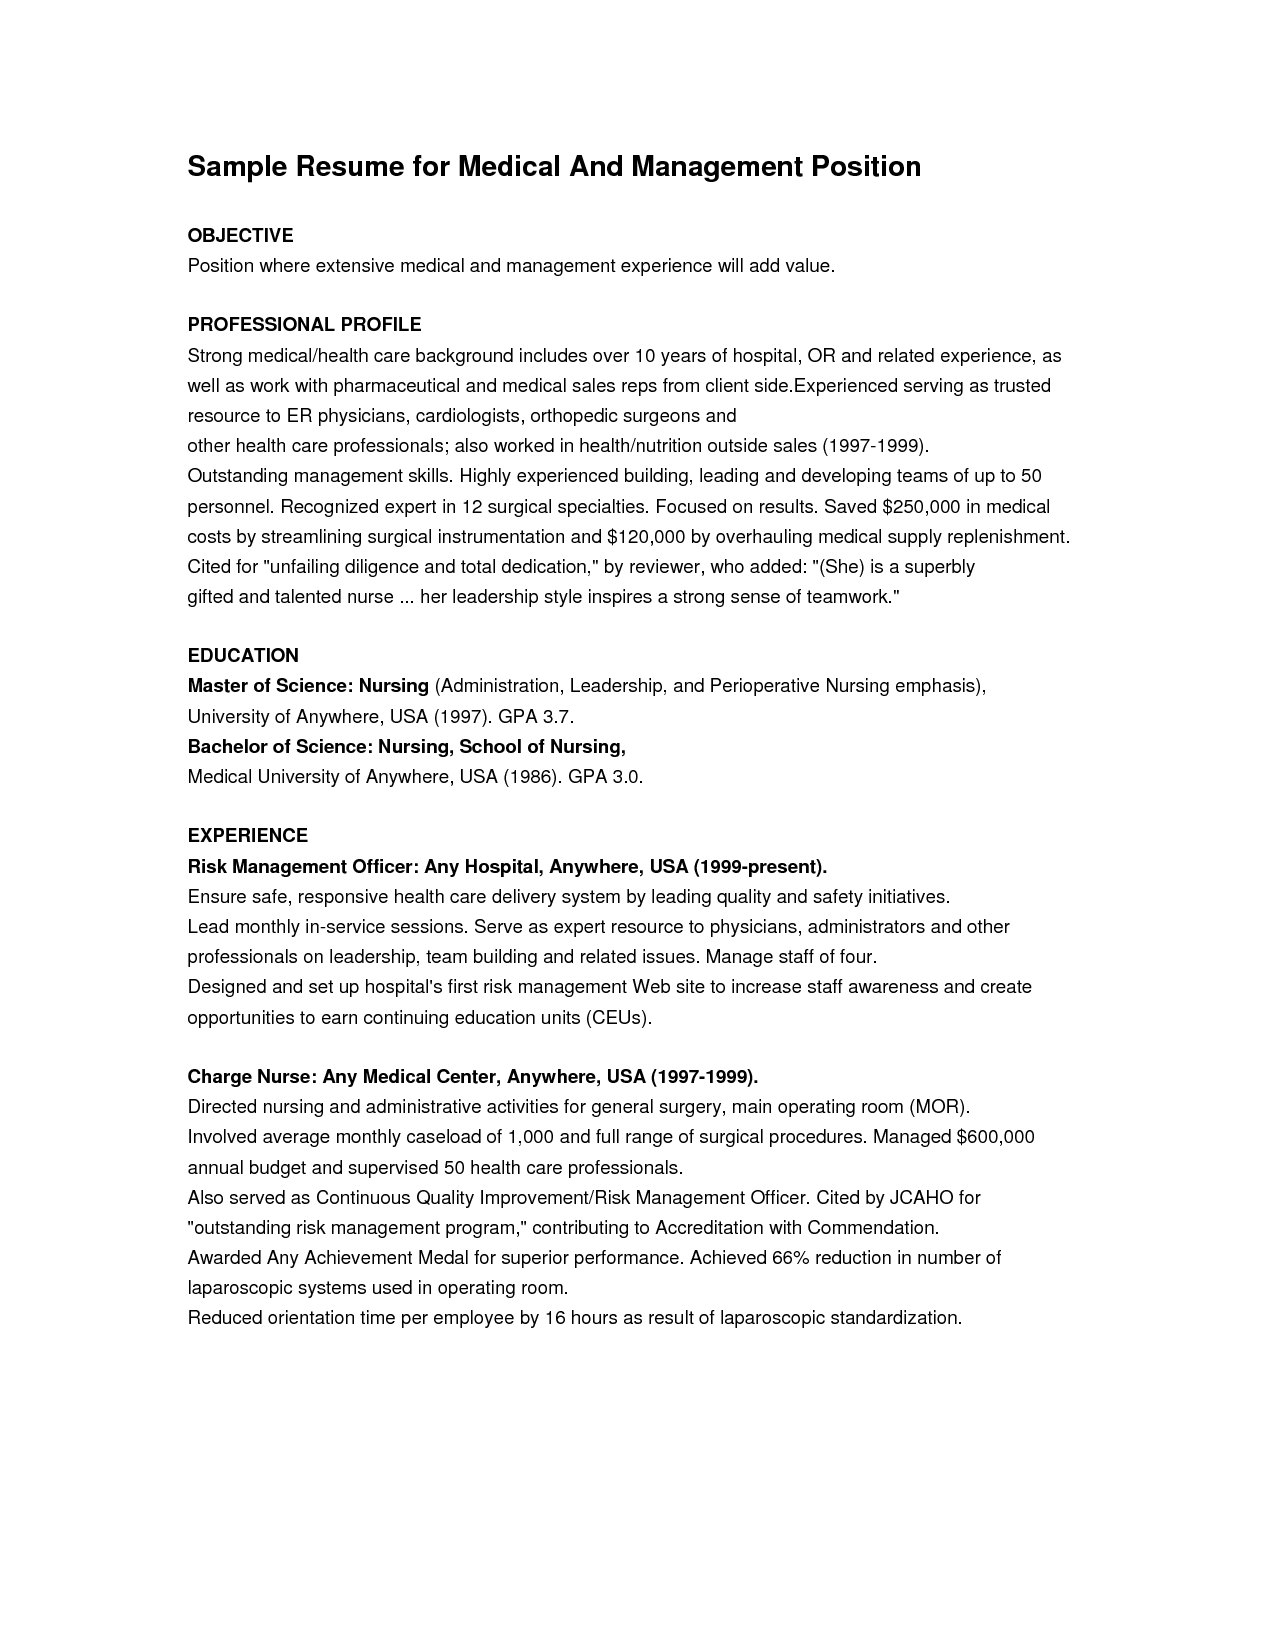 2016 resume objective example for Sample resume for managing director position